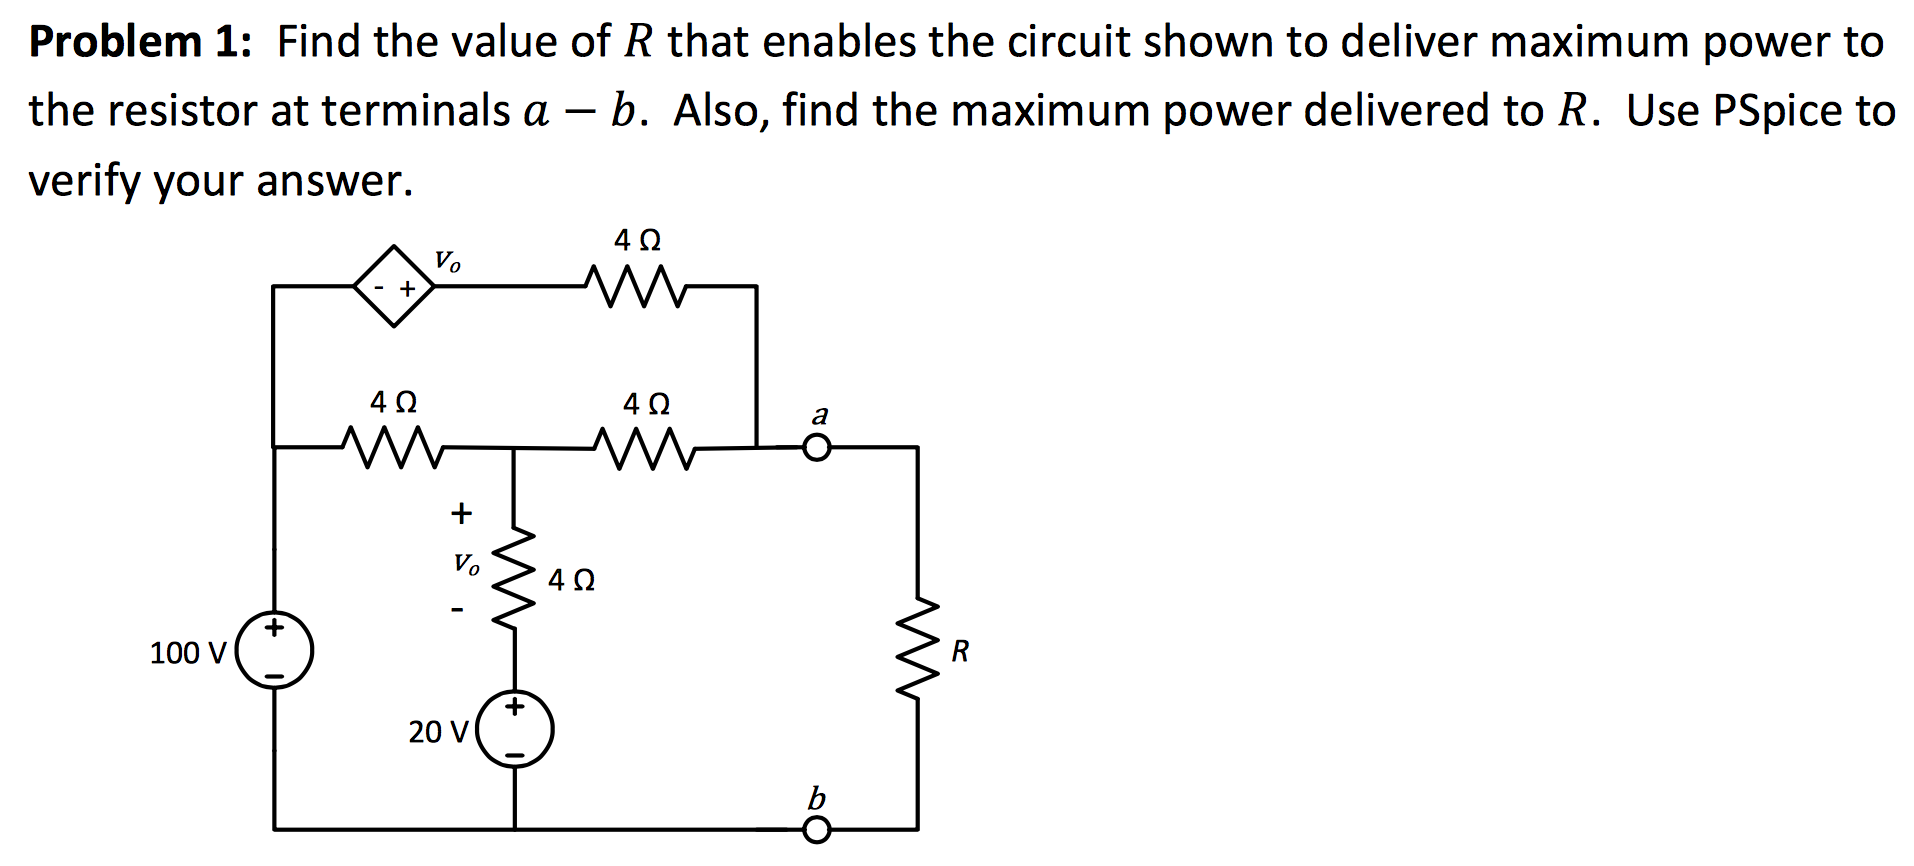 Find the value of R that enables the circuit shown